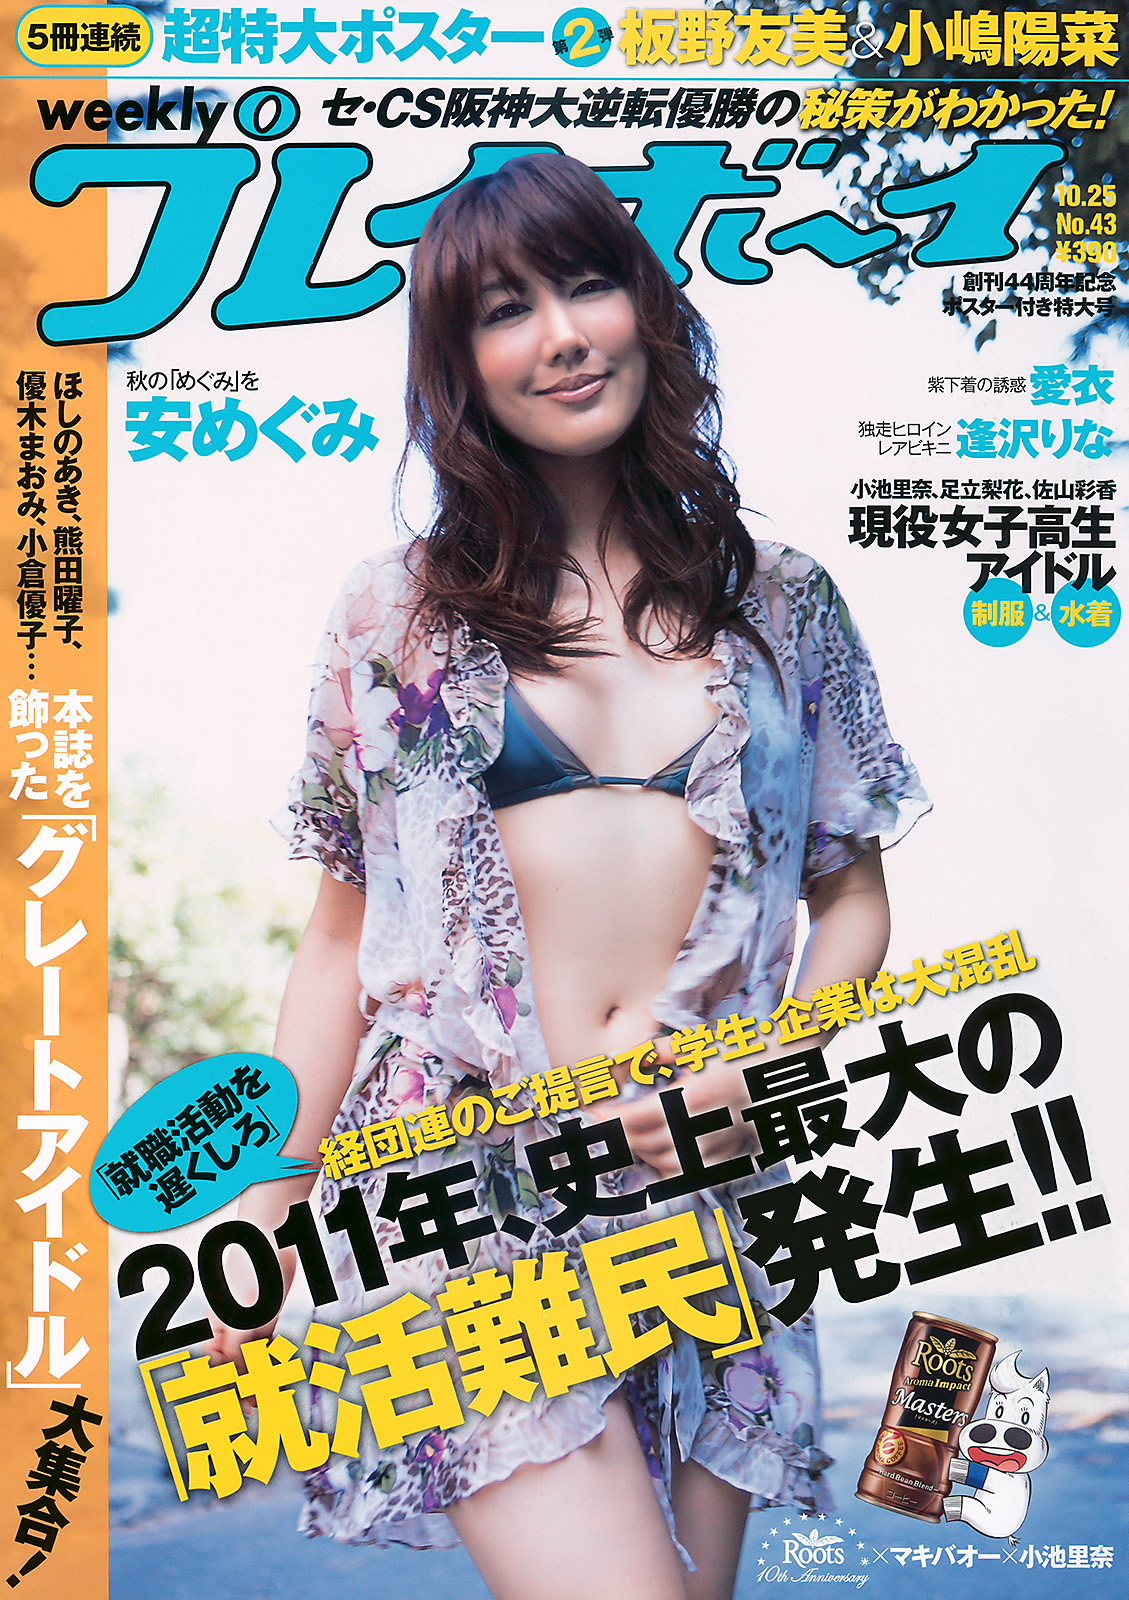 Weekly Playboy - 25 October 2010 (N° 43) - idols